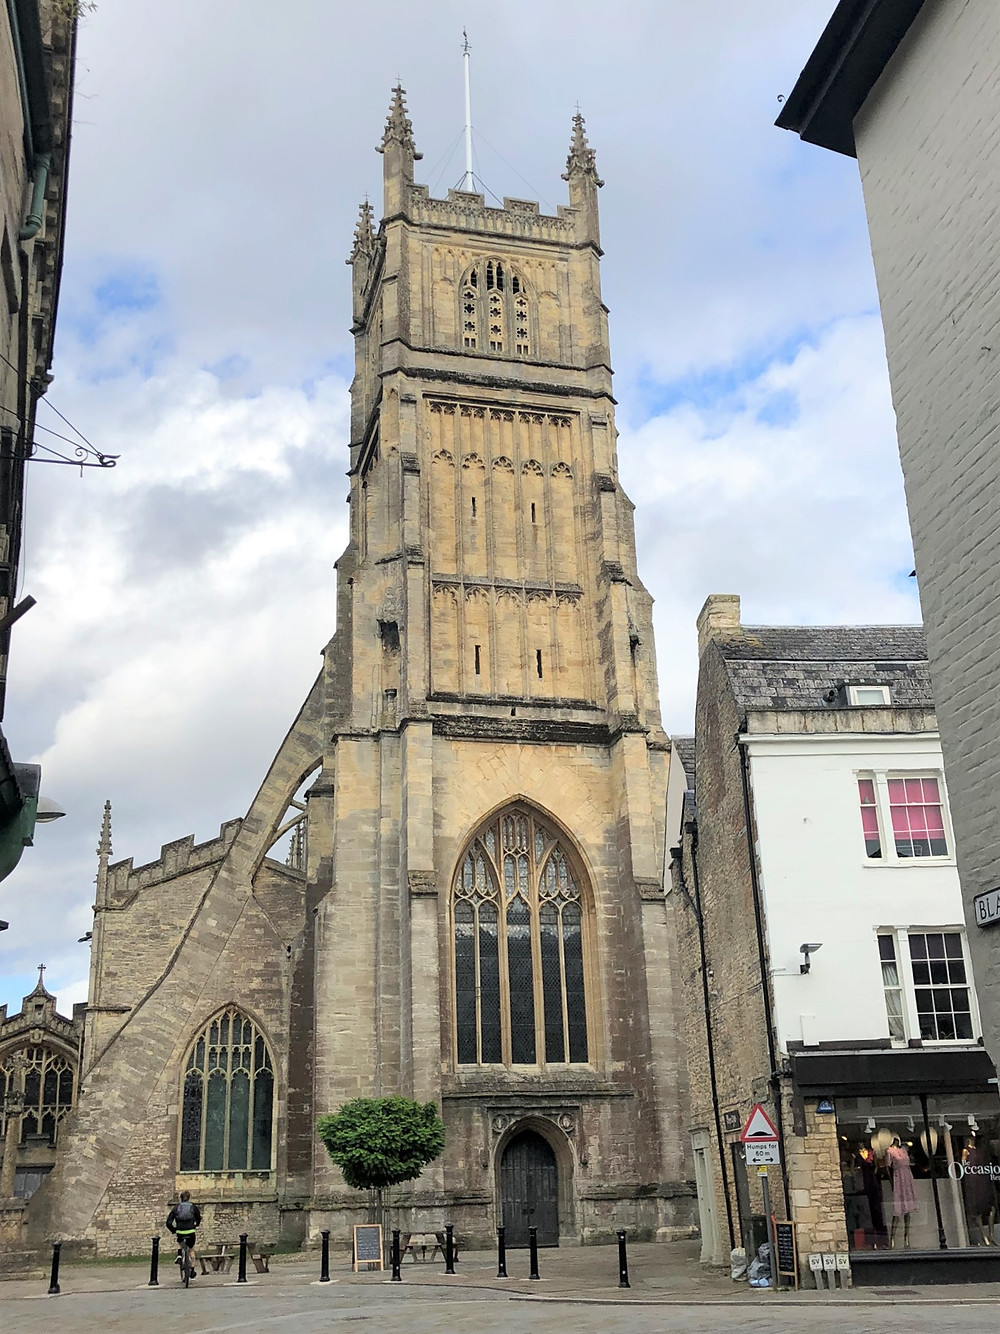 The West Tower of Cathedral of the Cotswolds, St. John the Baptist in Cirencester of the Cotswolds